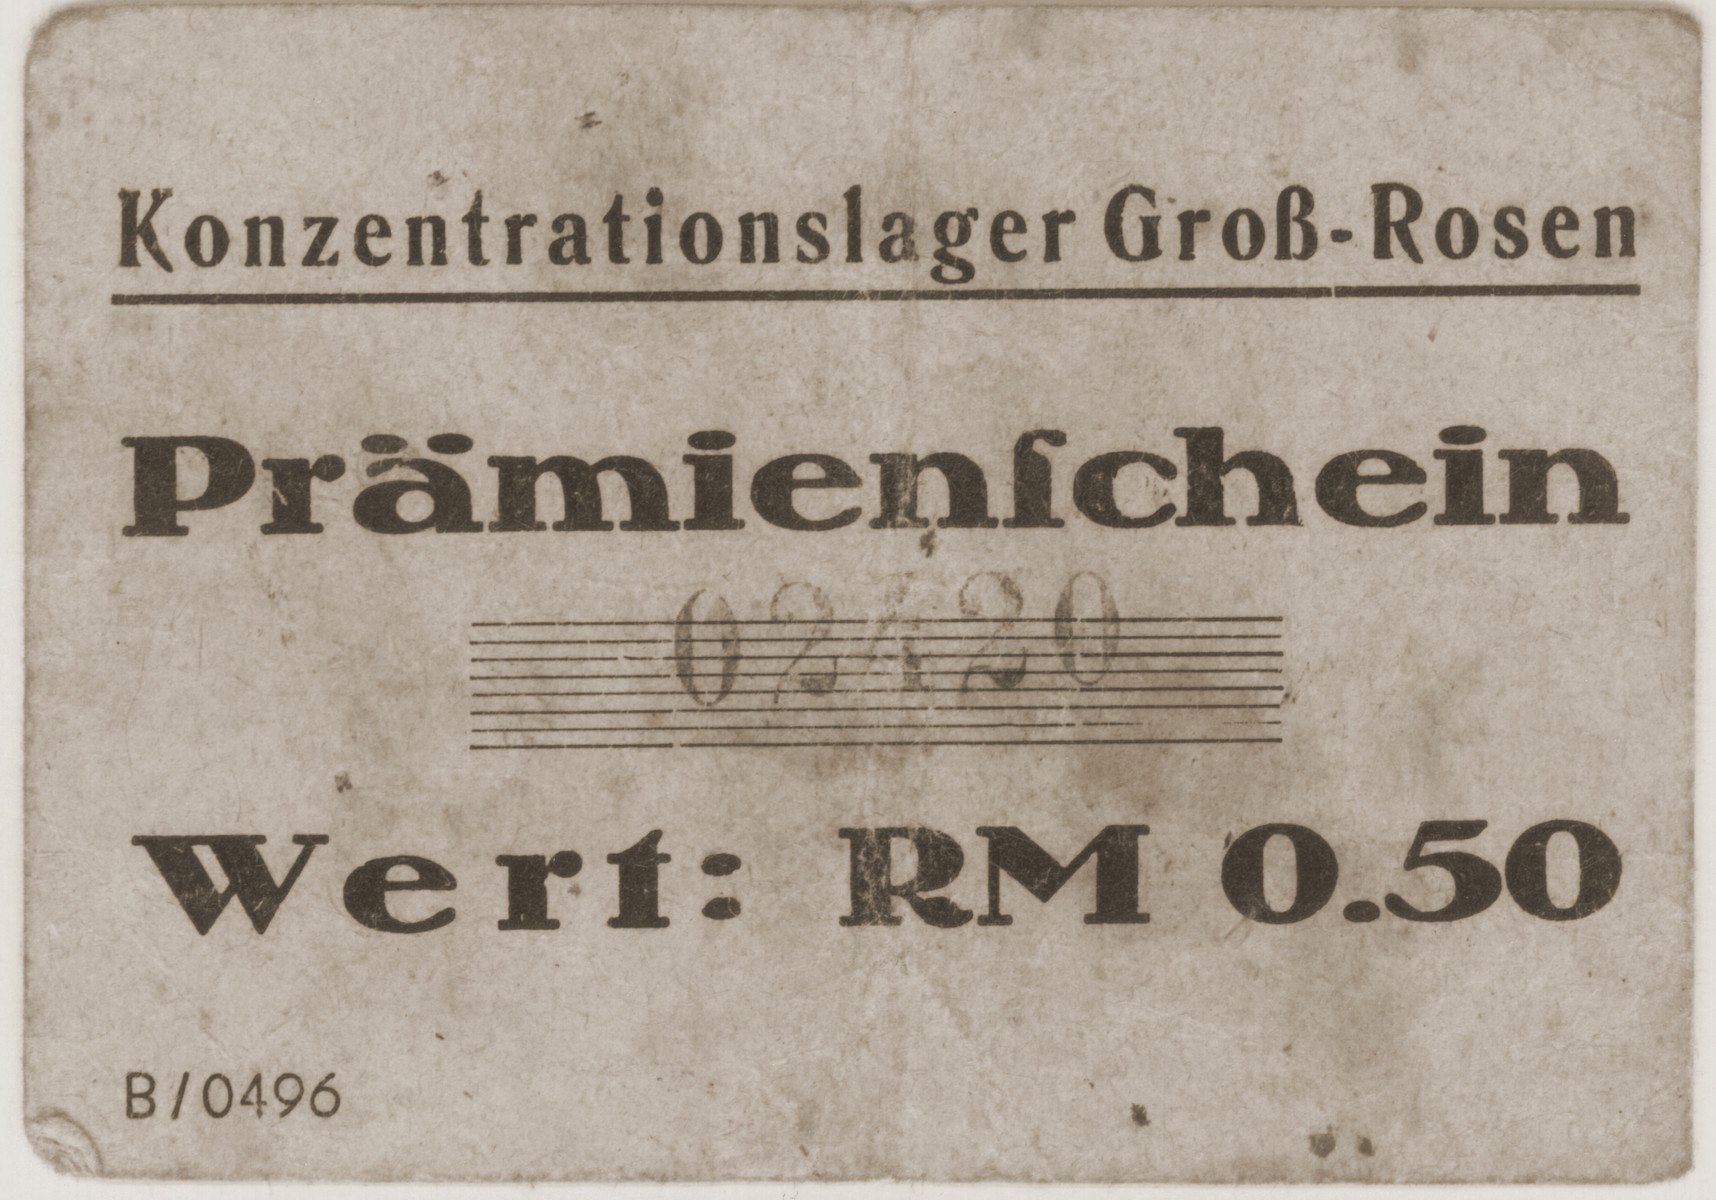 A .50 RM piece of scrip from the Gross Rosen concentration camp that was given to Hanka Granek during her imprisonment at the Peterswaldau sub-camp of Gross Rosen.